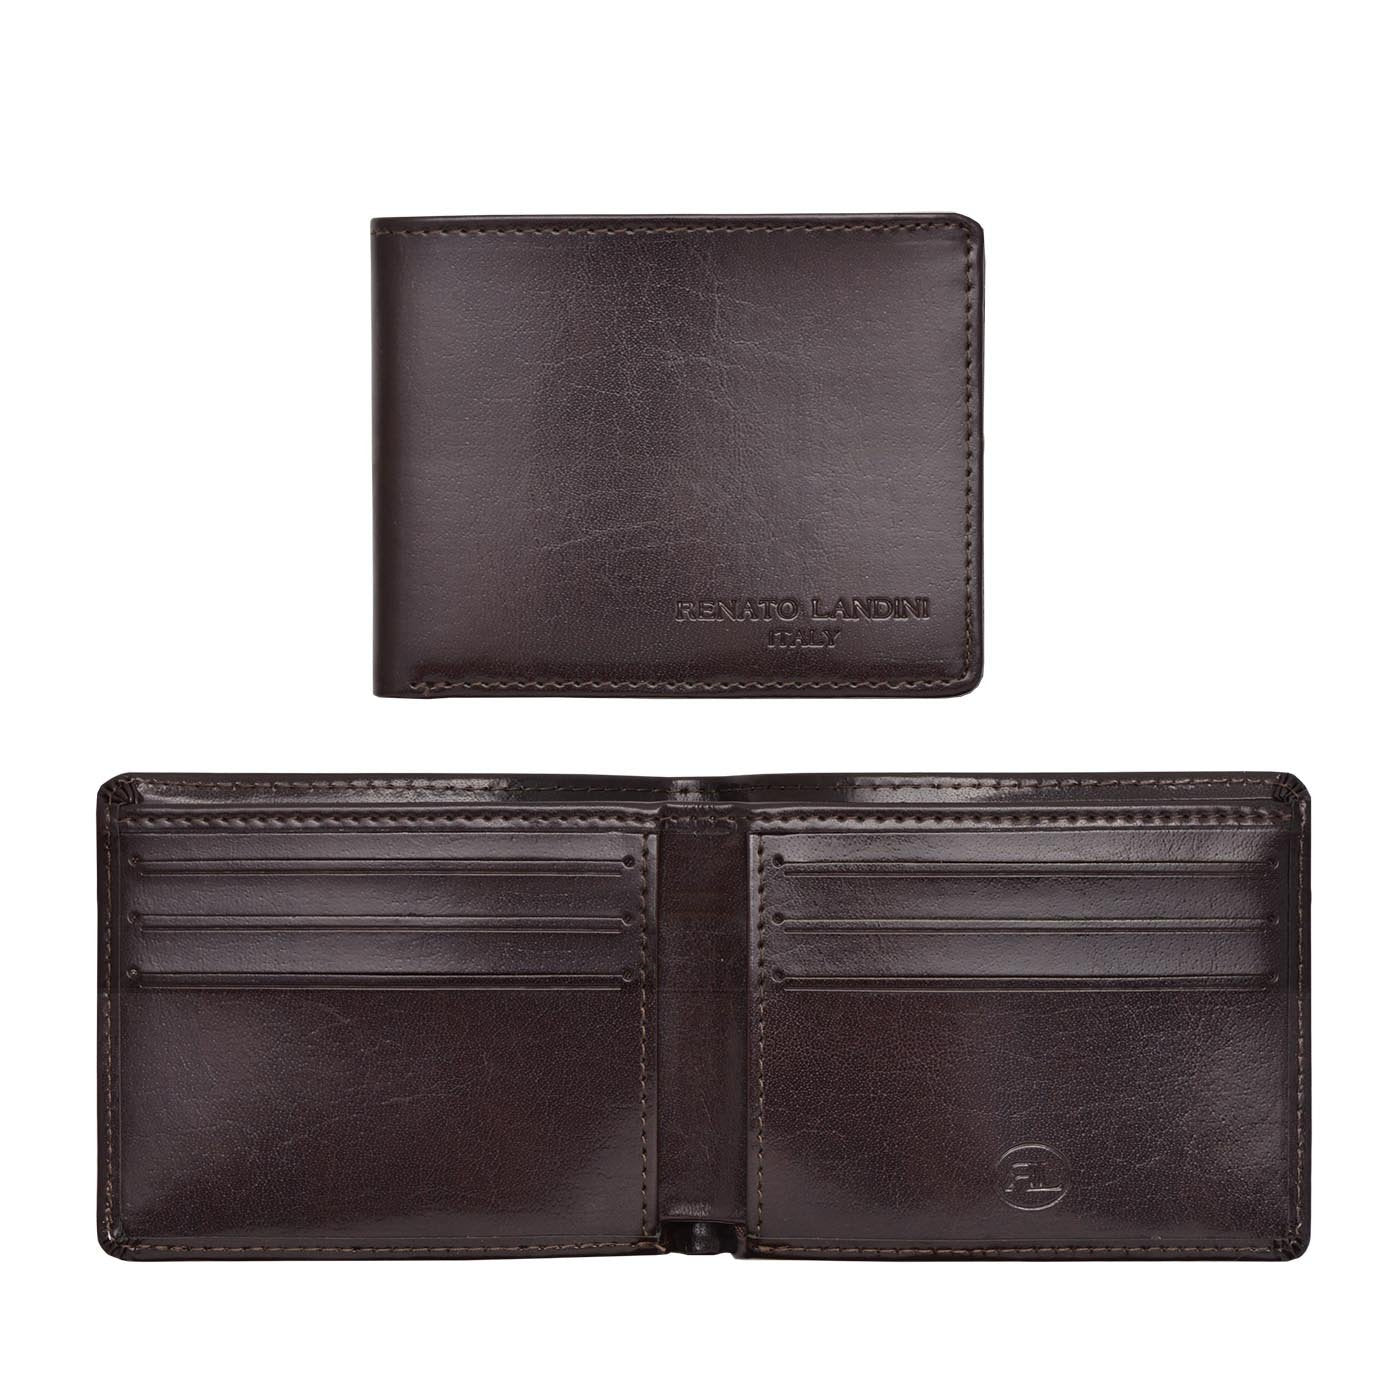 RENATO LANDINI Brown Men's Wallet/ Aristocrat